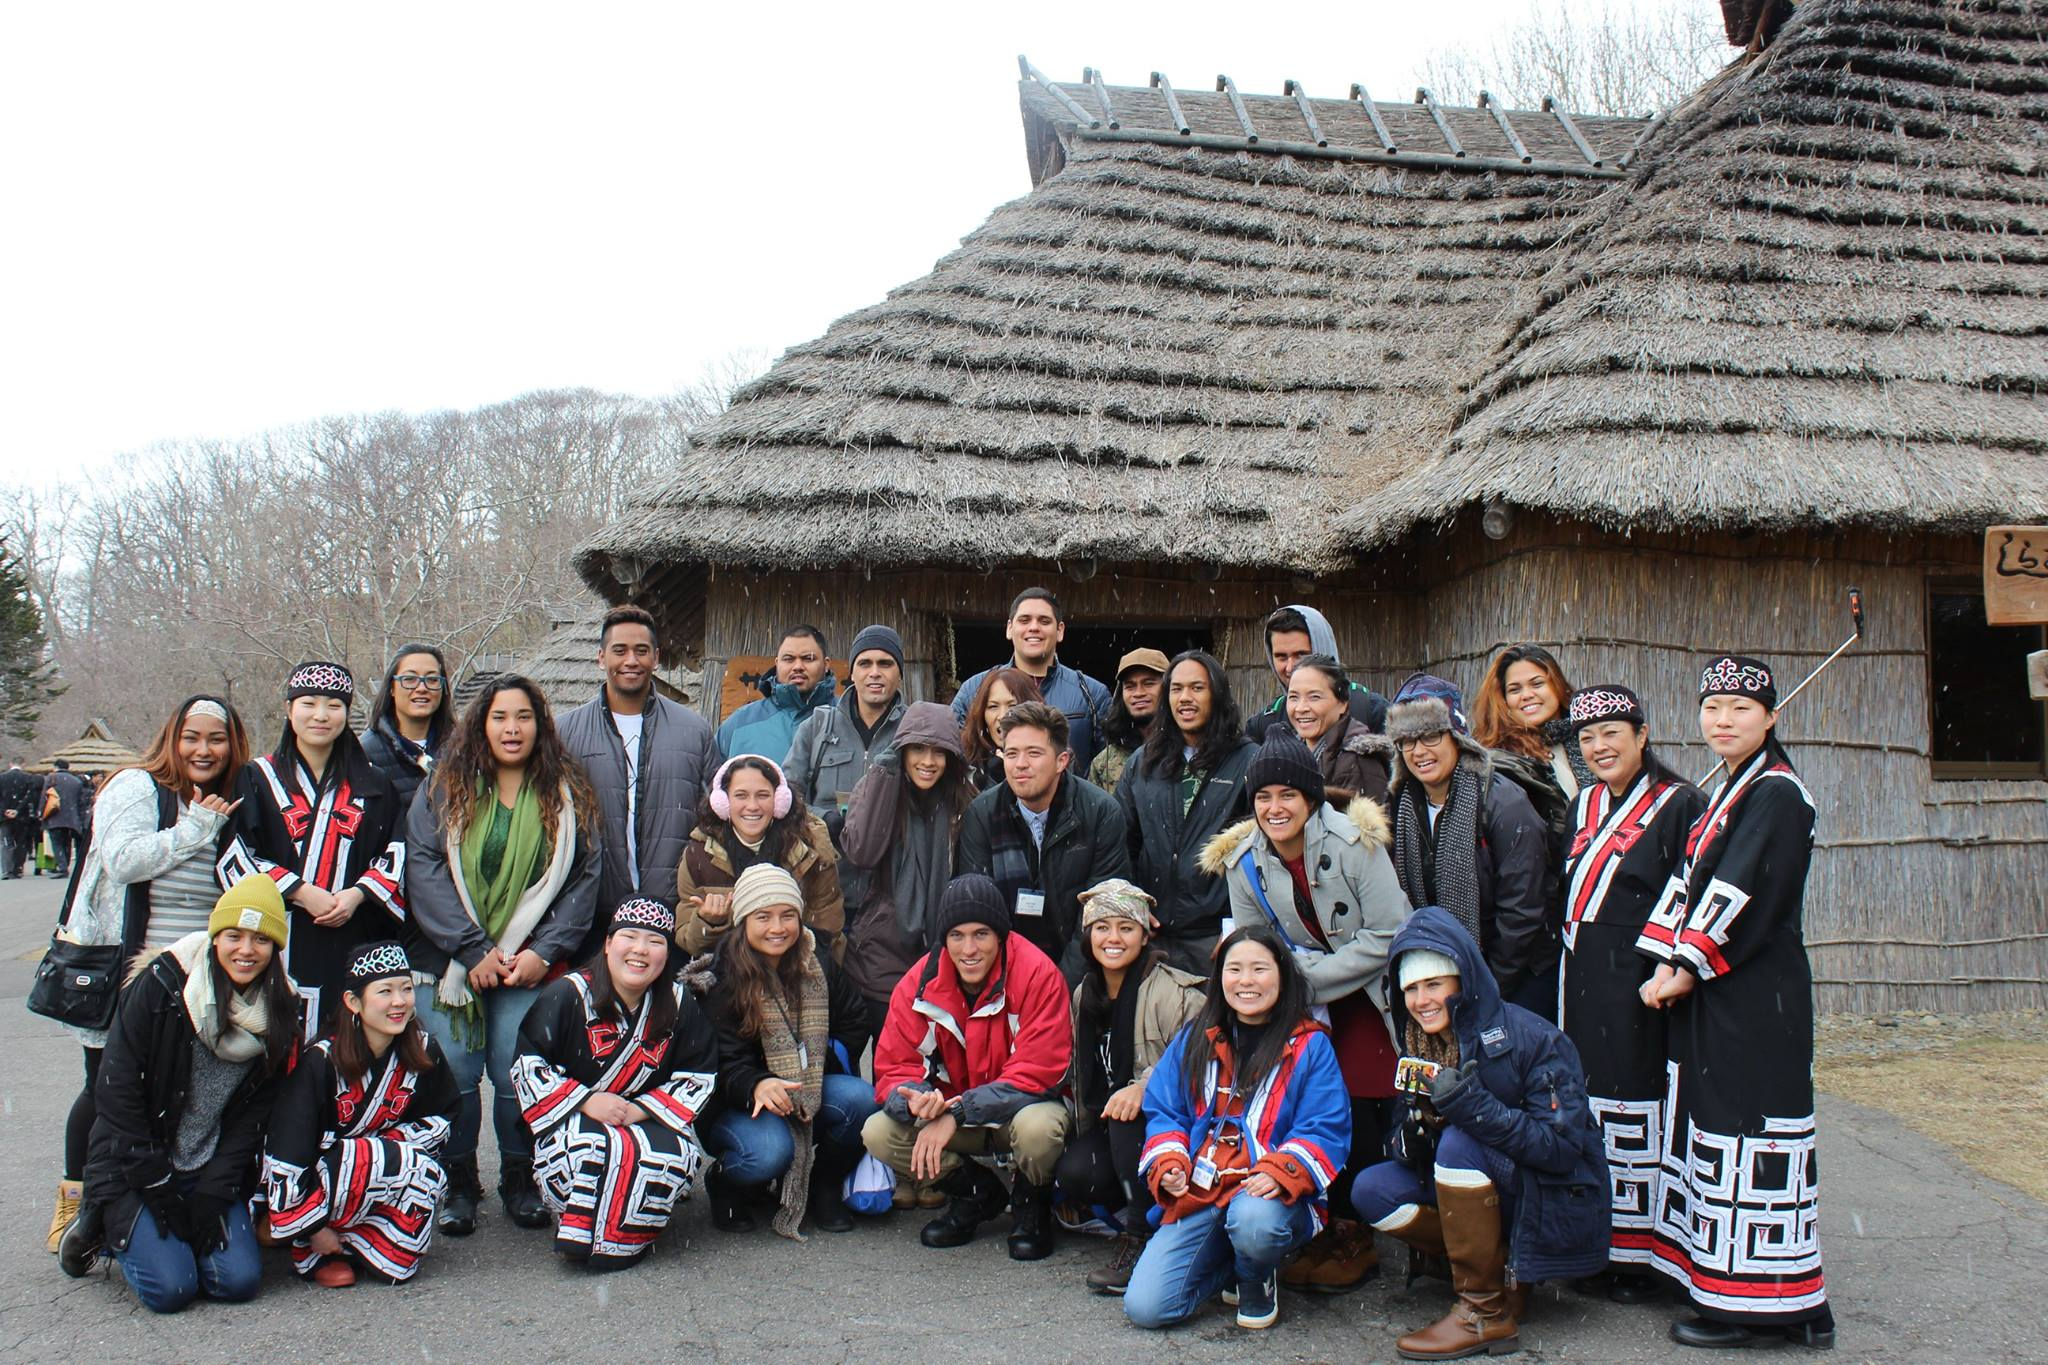 PHOTOS: UH Hilo Tomodachi Scholars visit Japan, come back with stories of an incredible experience